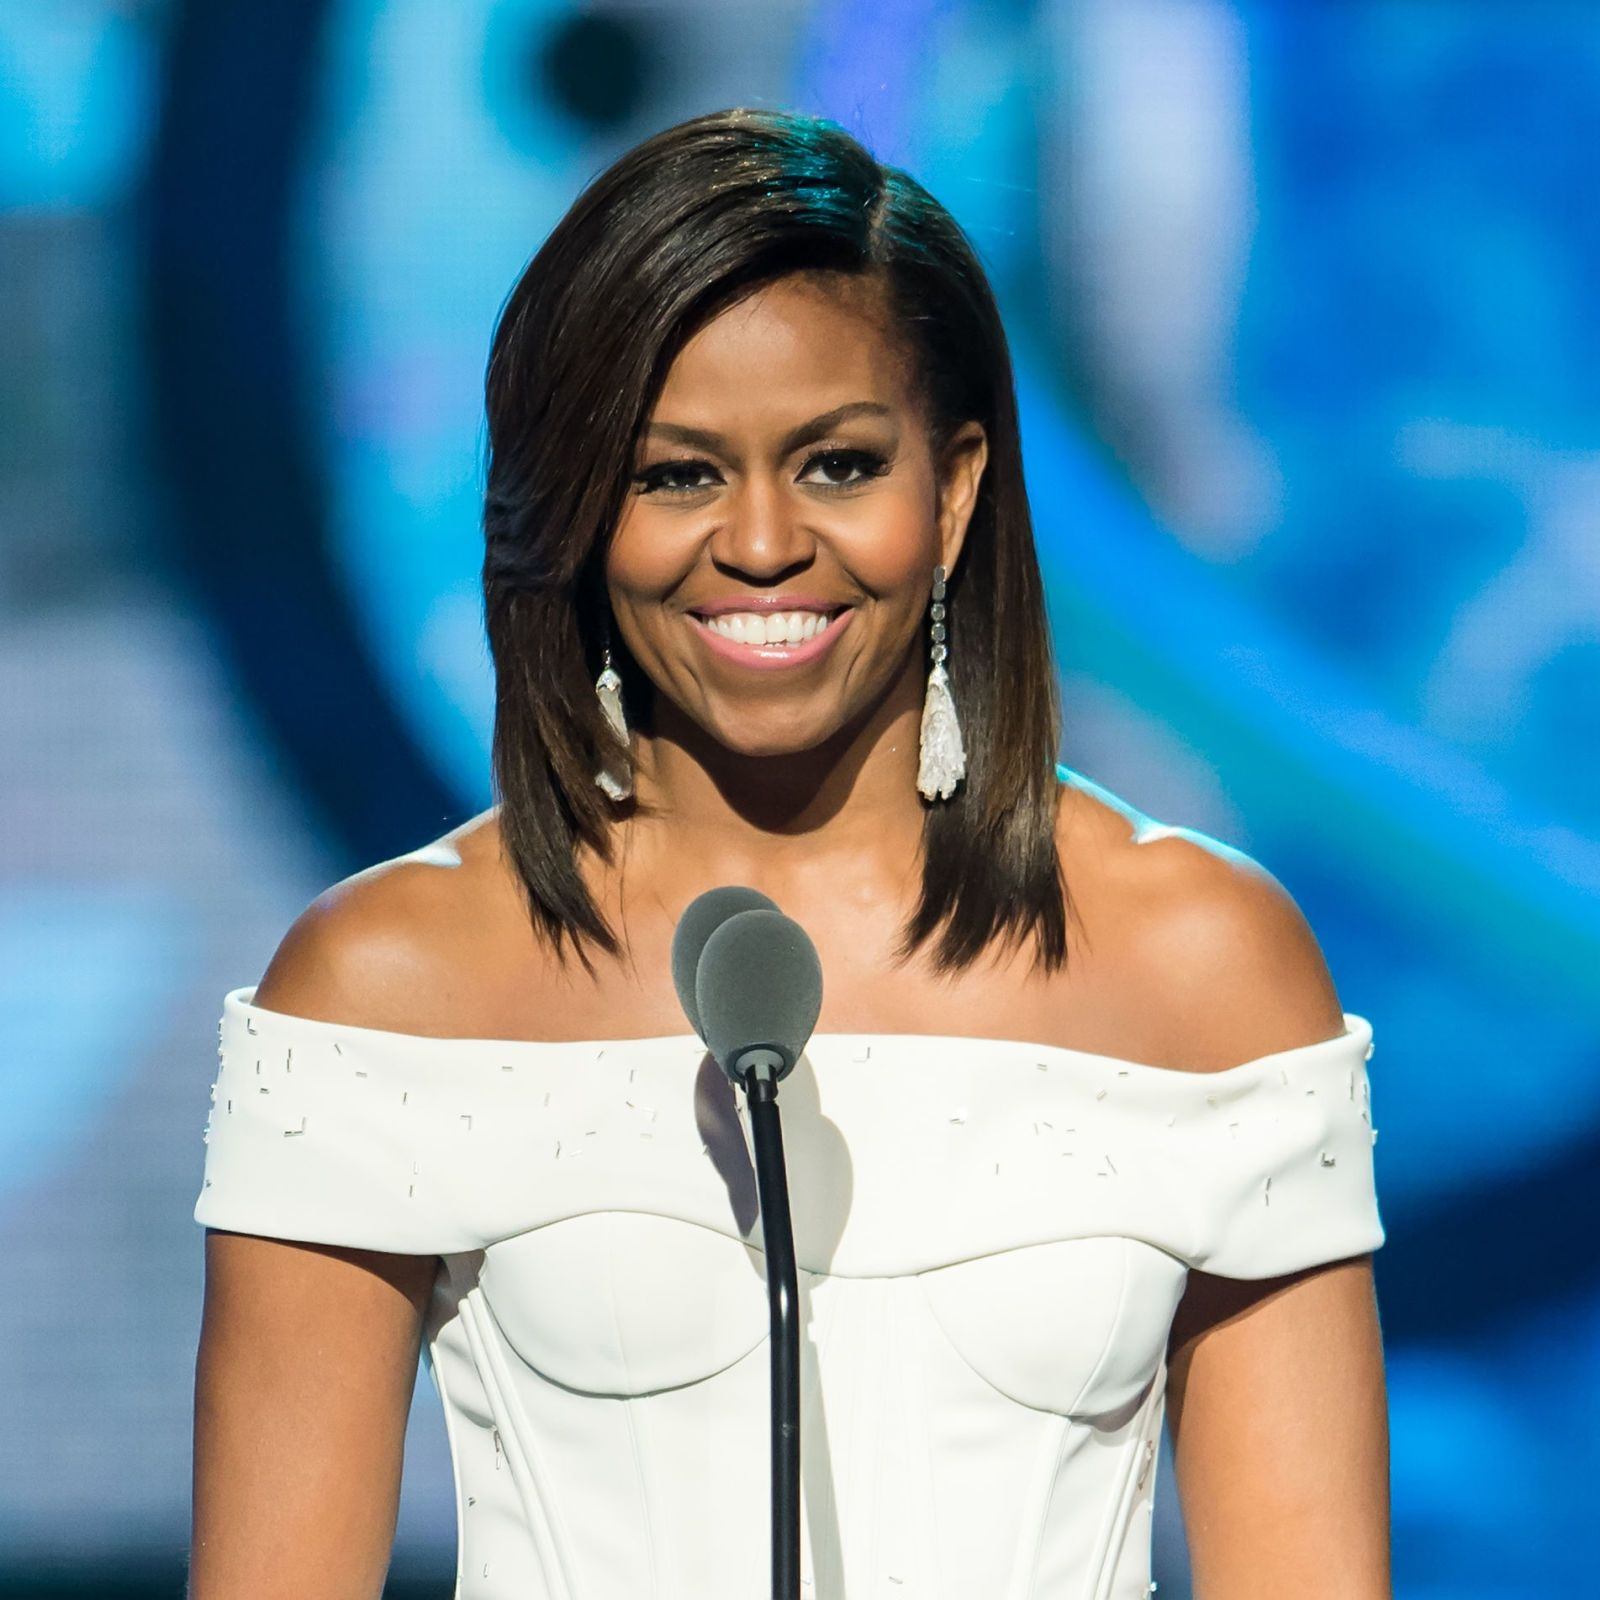 First Ladies: Everything To Know About The Michelle Obama-Based TV Series